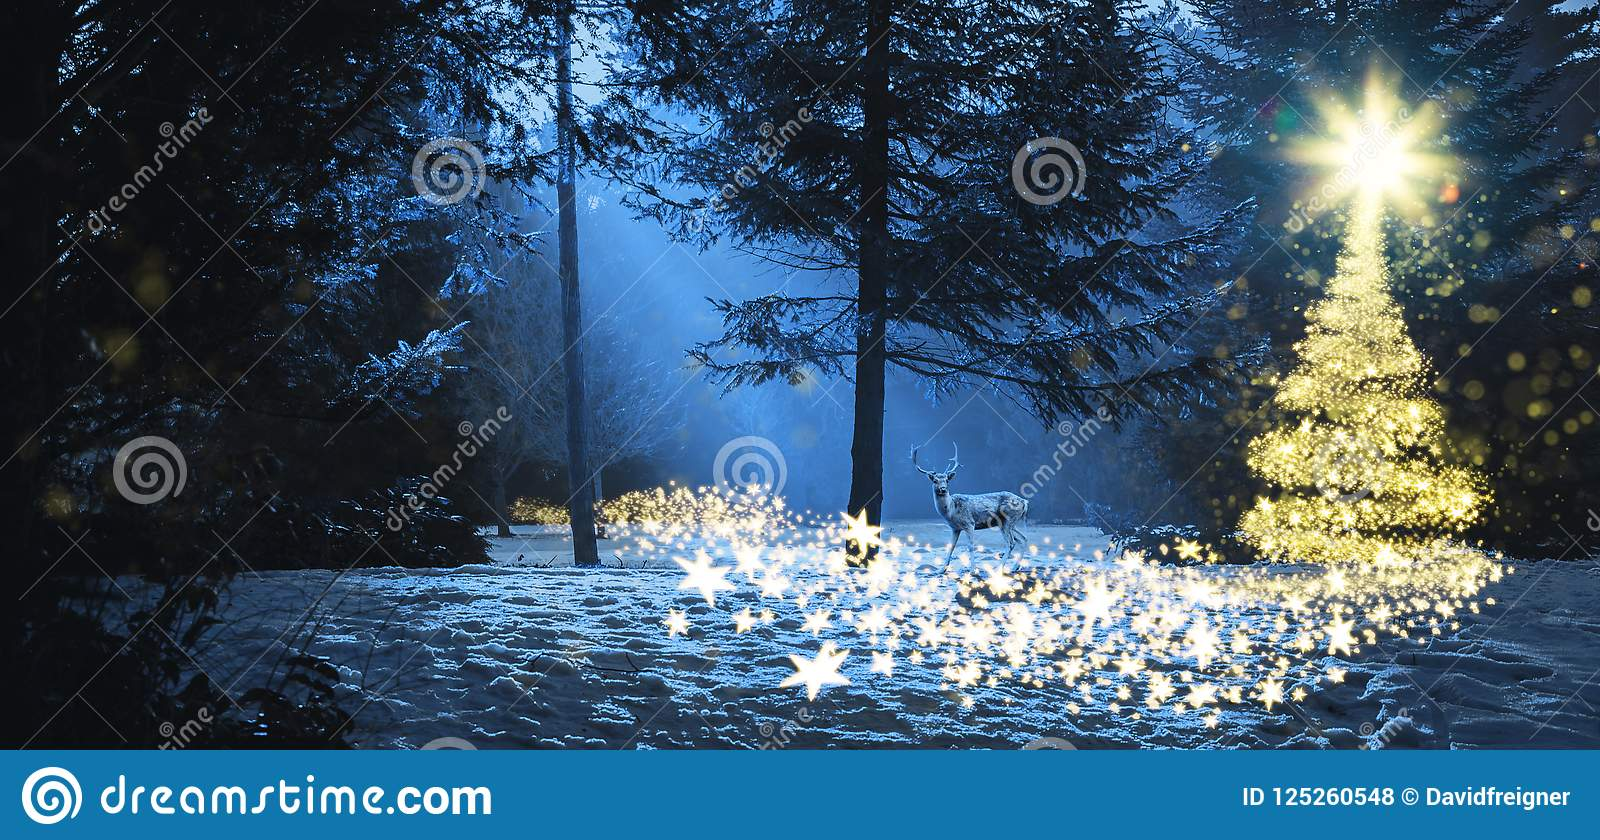 Christmas In The Woods.Magic Christmas Scene In The Woods With A Deer Stock Photo